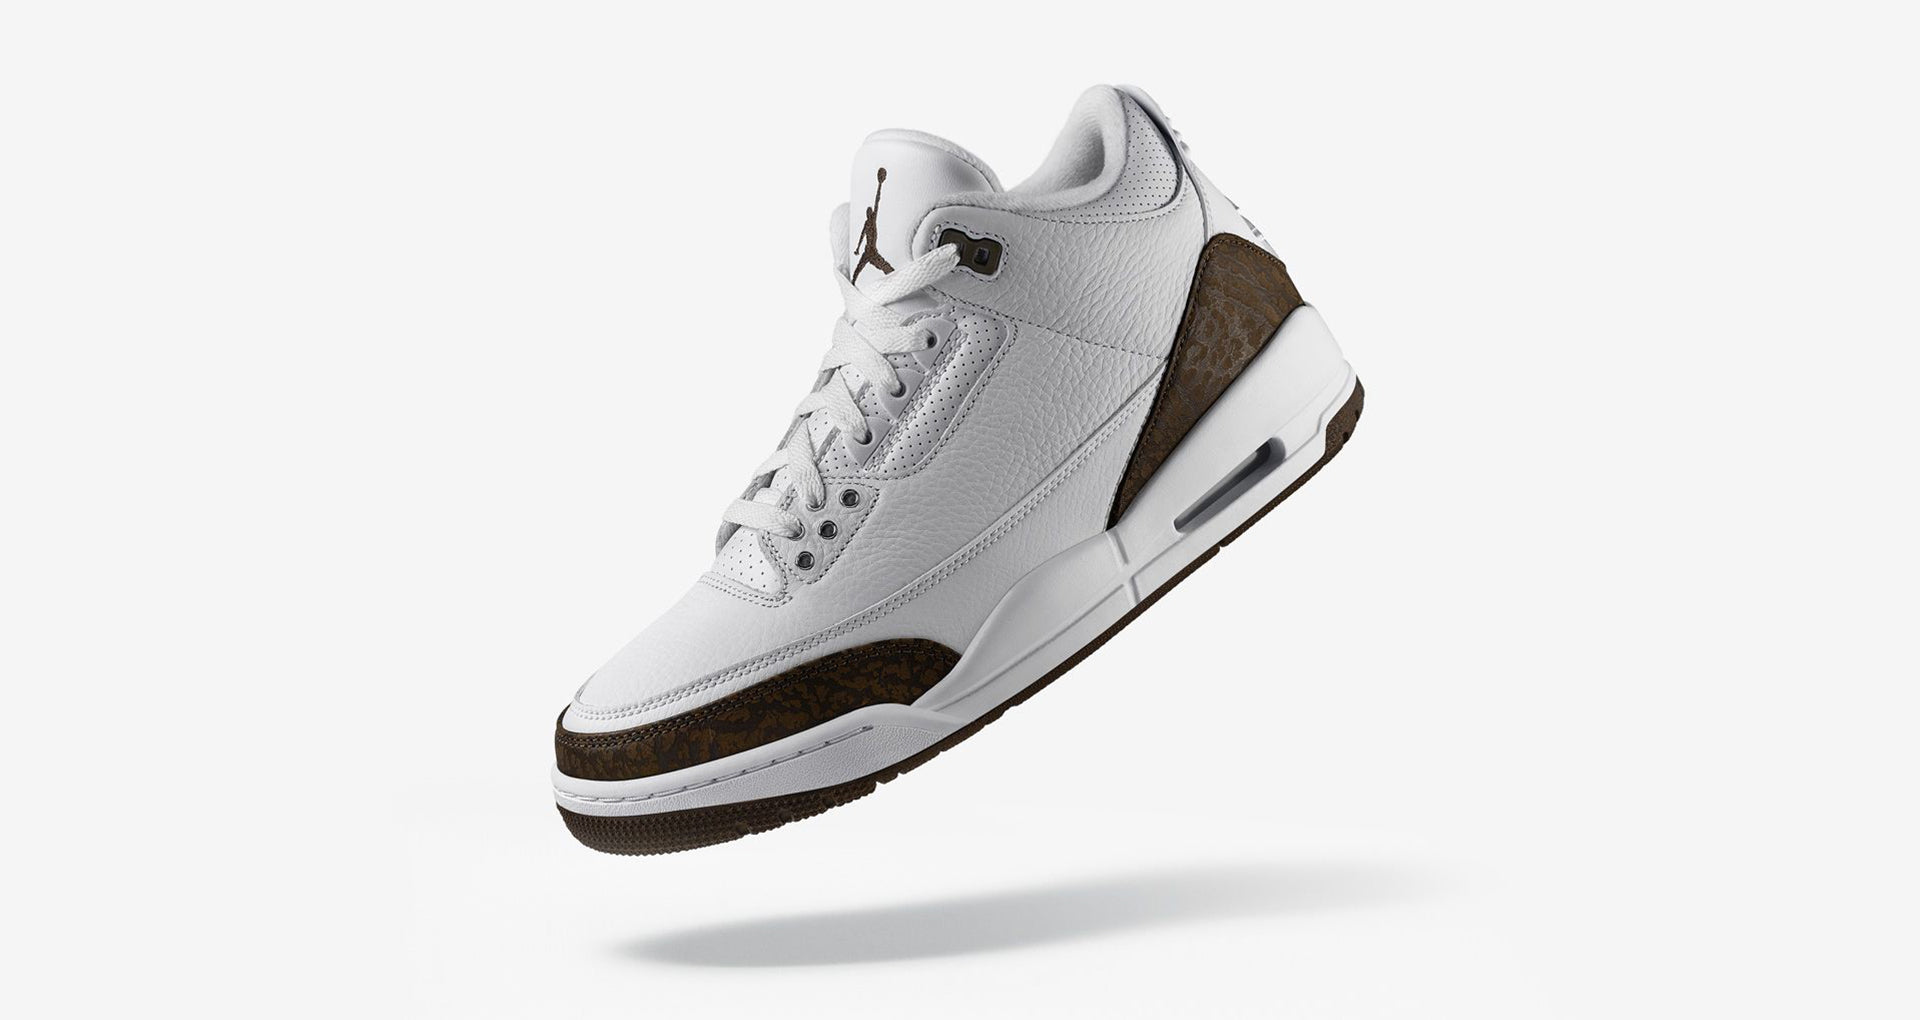 1e8f4ab4a528 The Nike Air Jordan 3 Retro NRG